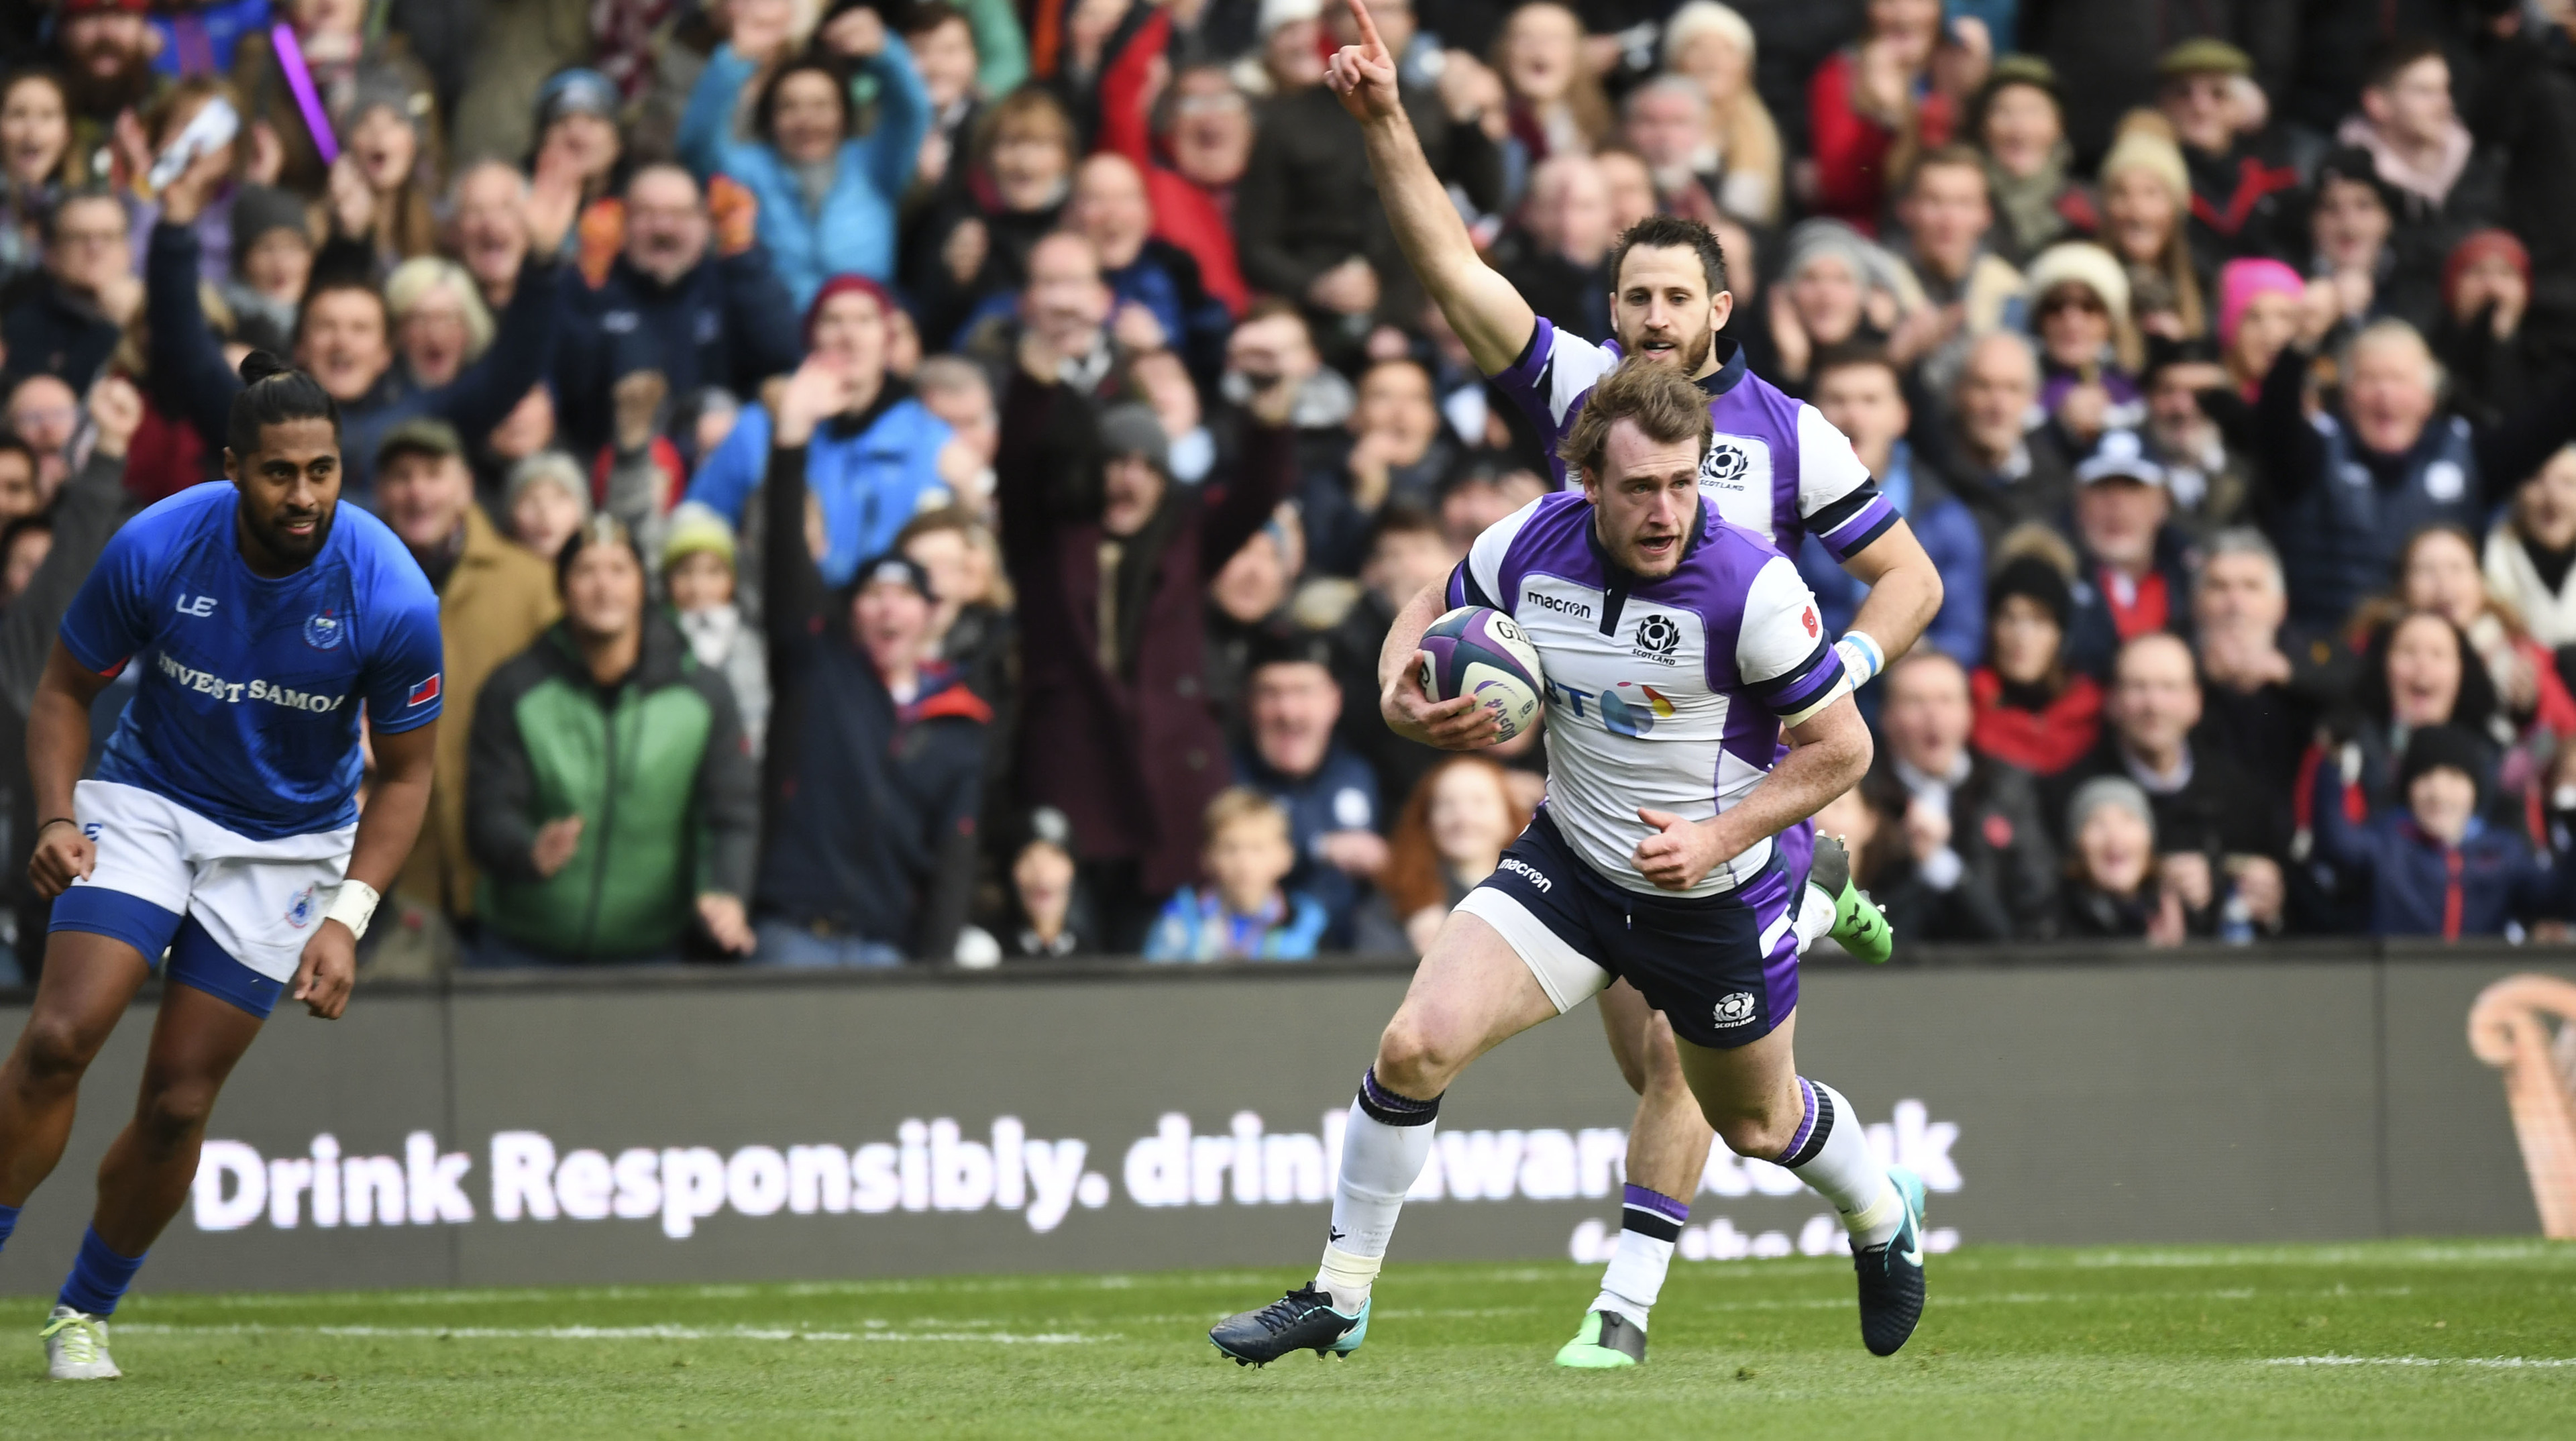 Stuart Hogg runs clear to score the opening try at Murrayfield on Saturday.